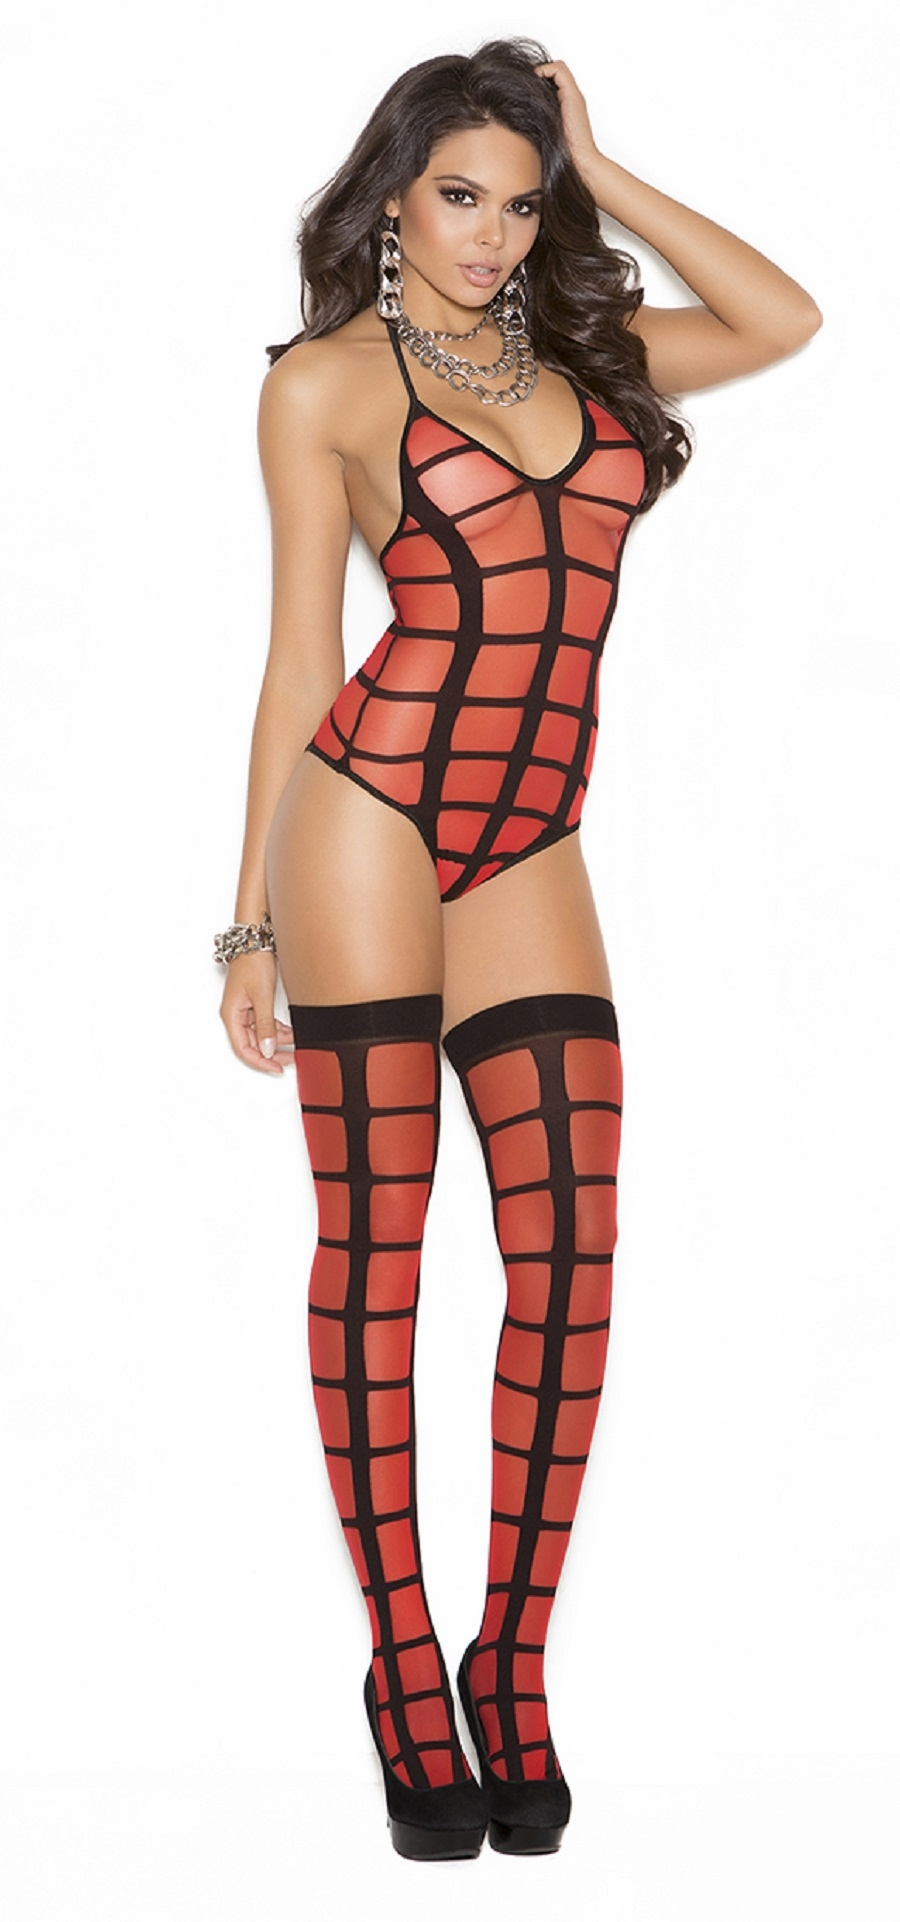 1595 Red and Black Sheer Striped Pattern Teddy and Stockings Lingerie Set OS